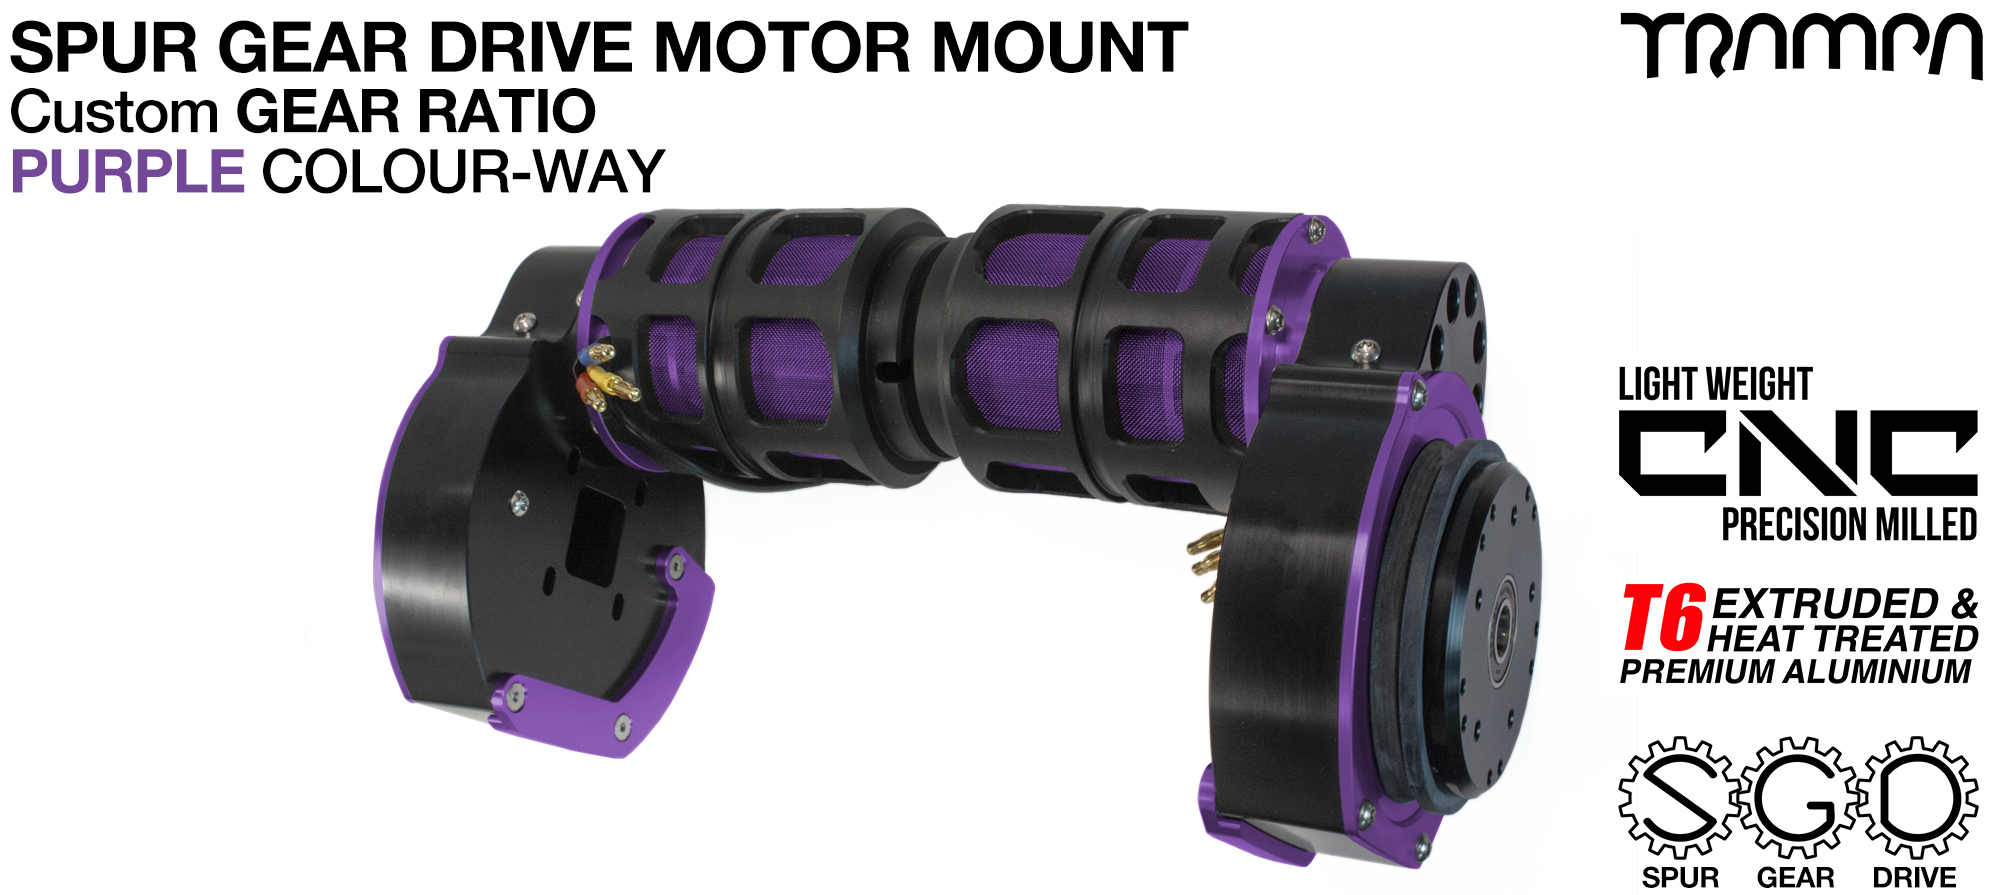 Mountainboard Spur Gear Drive TWIN Motor Mount - PURPLE